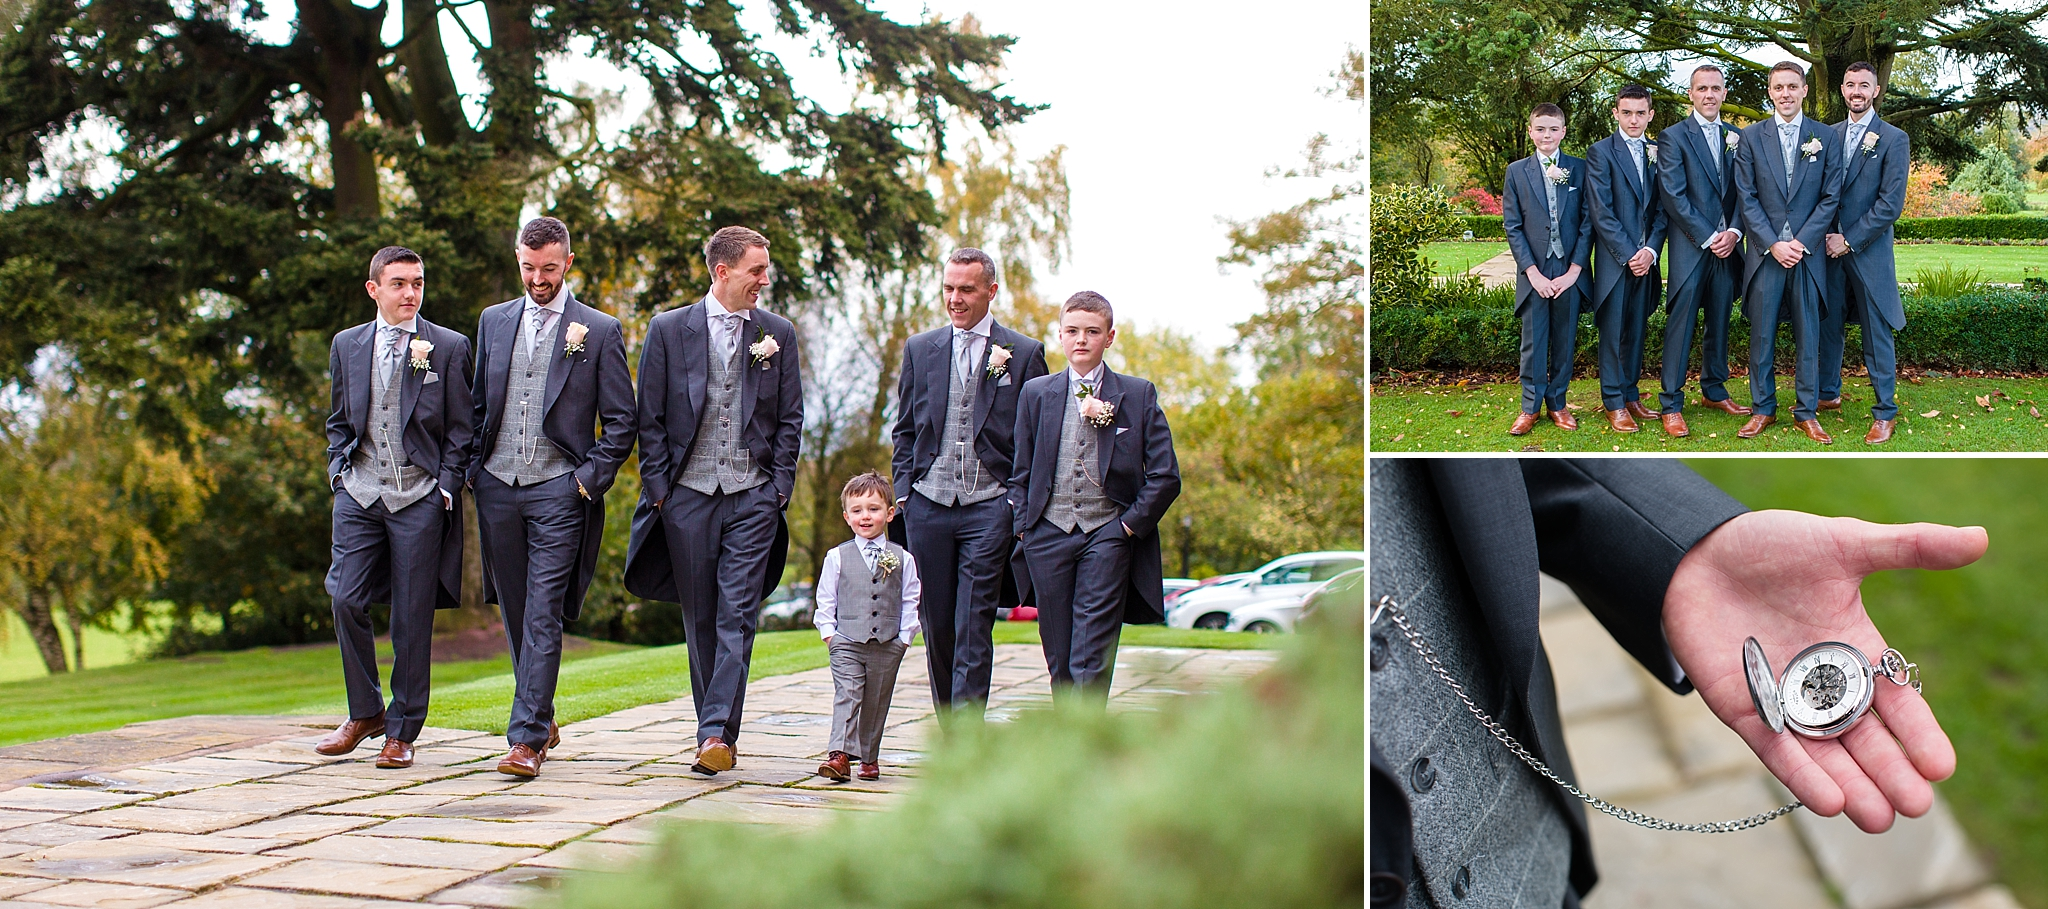 wedding photographer the upper house staffordshire 4.jpg